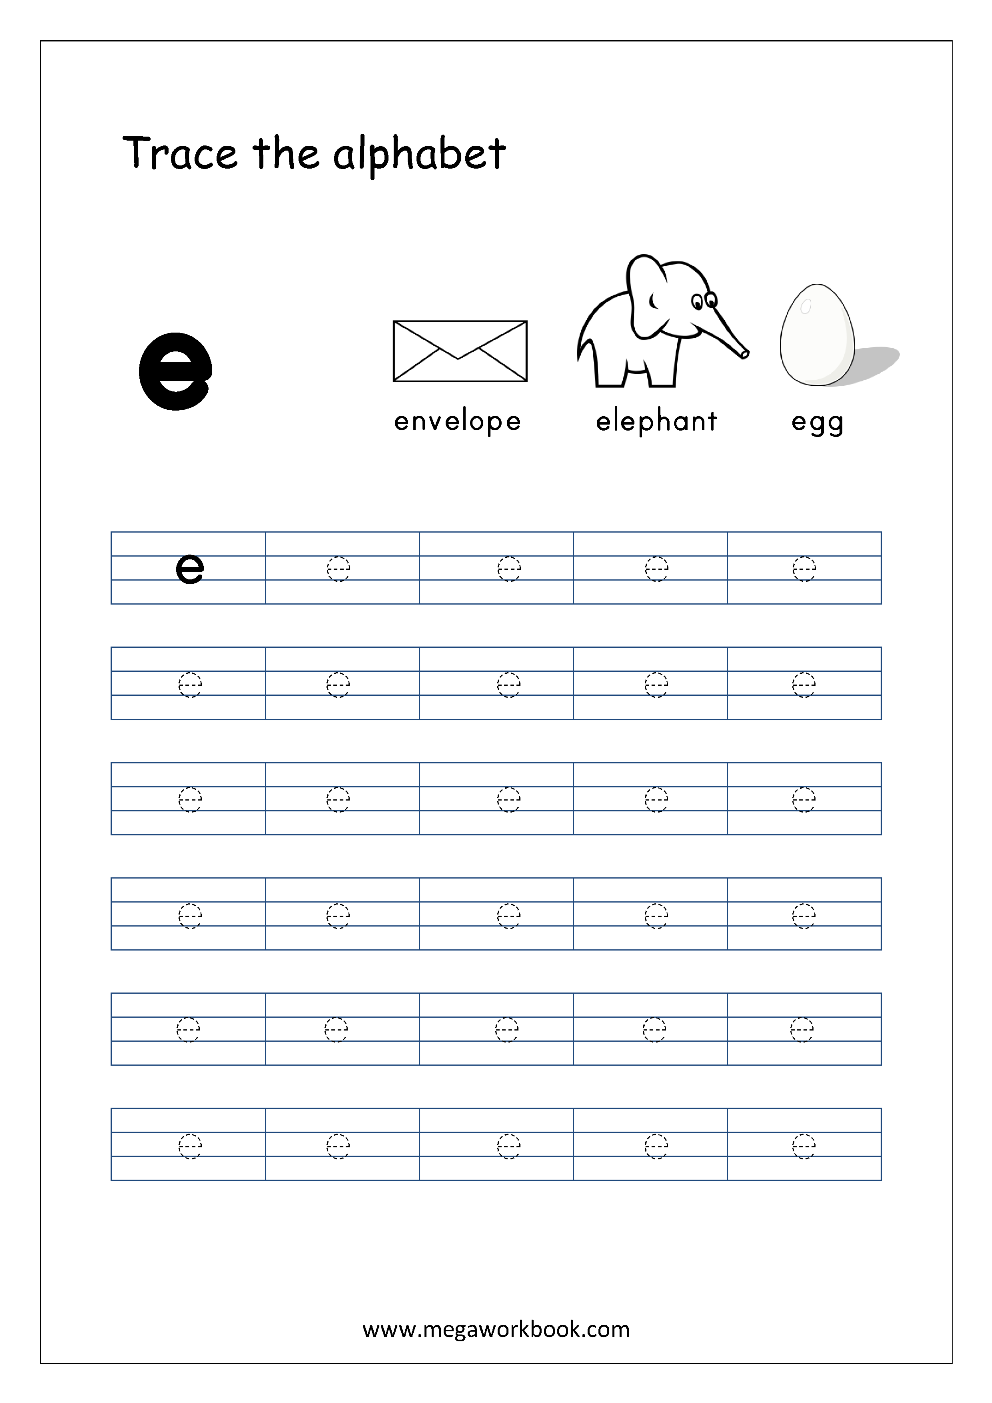 English Worksheet - Alphabet Tracing - Small Letter E with Letter E Tracing Sheets